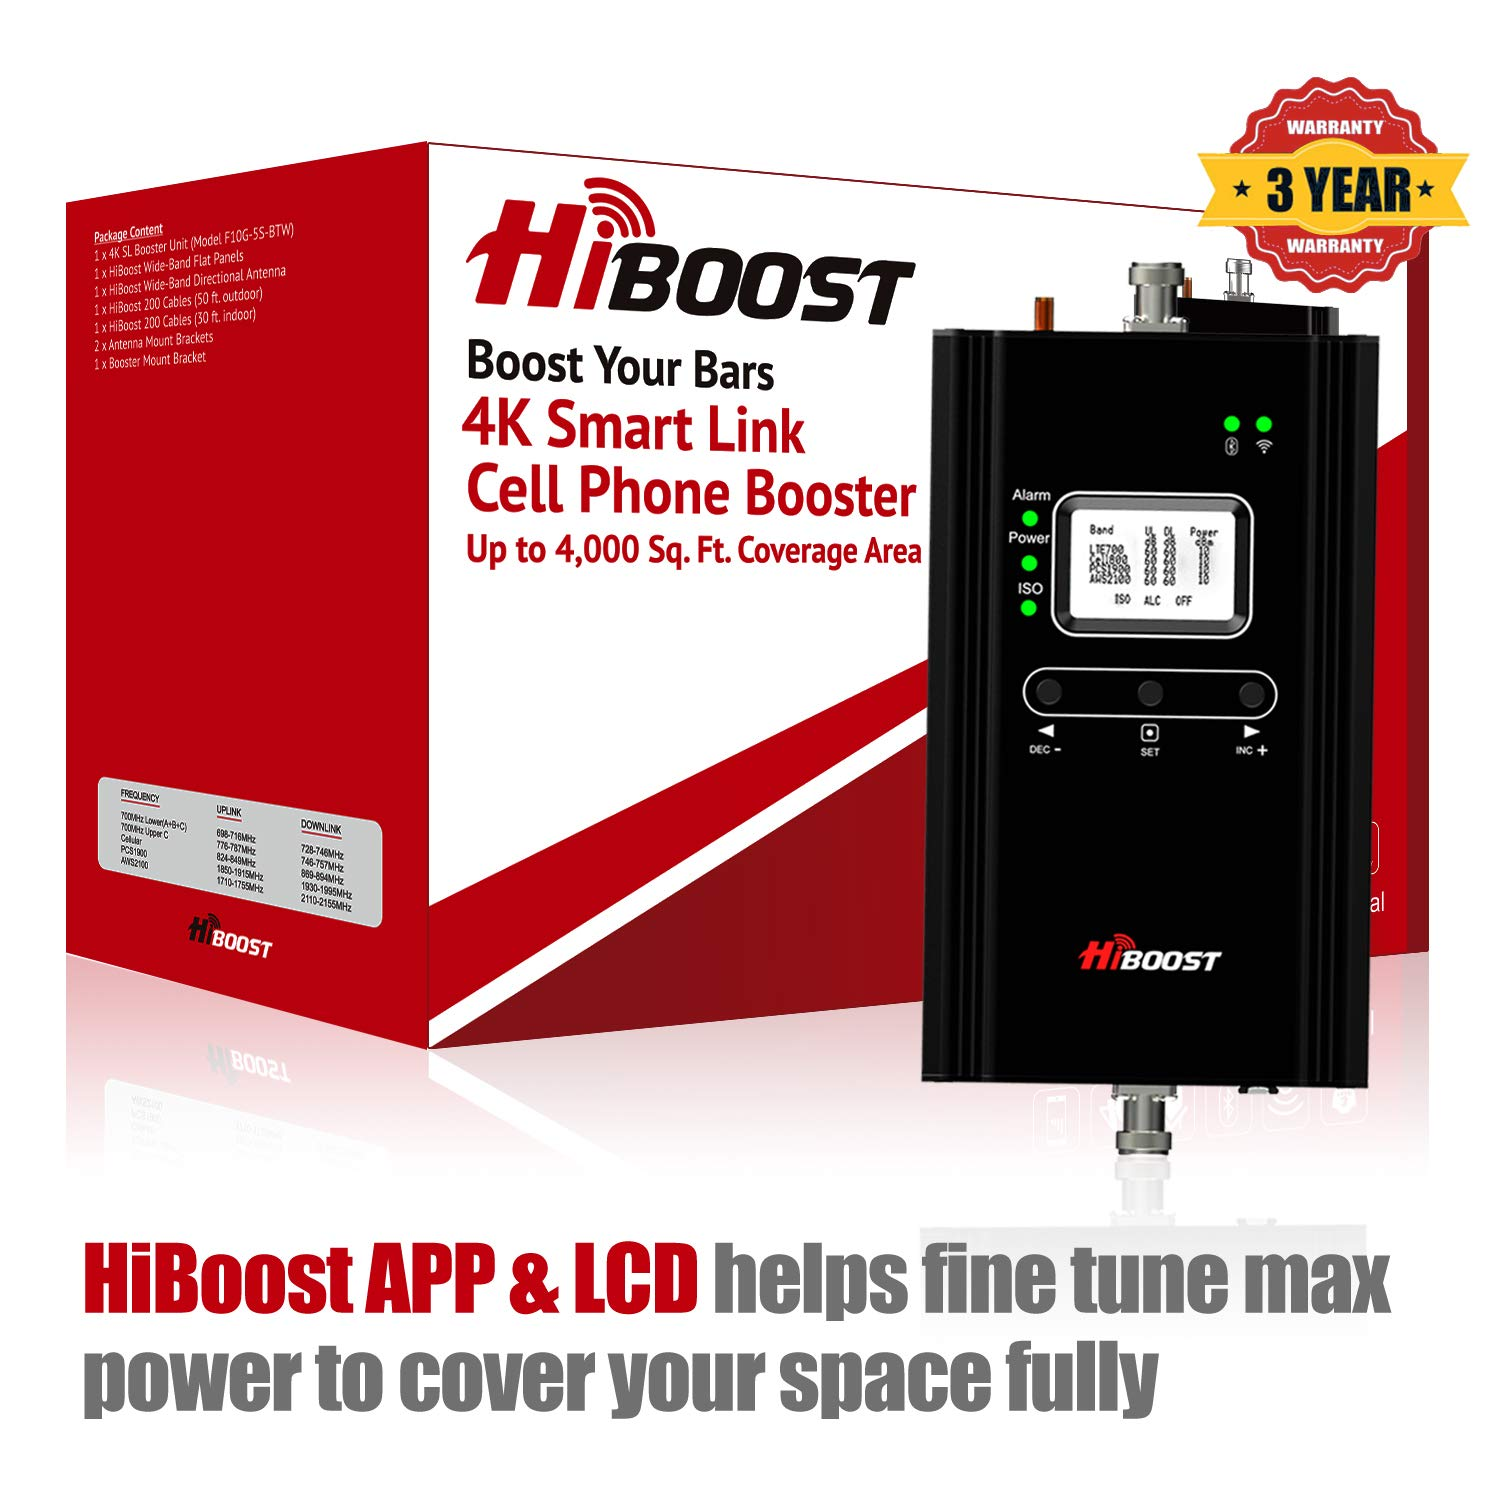 HiBoost 4K Smart Link - Cell Phone Signal Booster - Improves Reception on Phones, Tablets and Hotspots - Cell Booster to Support all Carriers - For Homes and Offices. Boost up to 1,000 - 4,000 Sq. Ft.